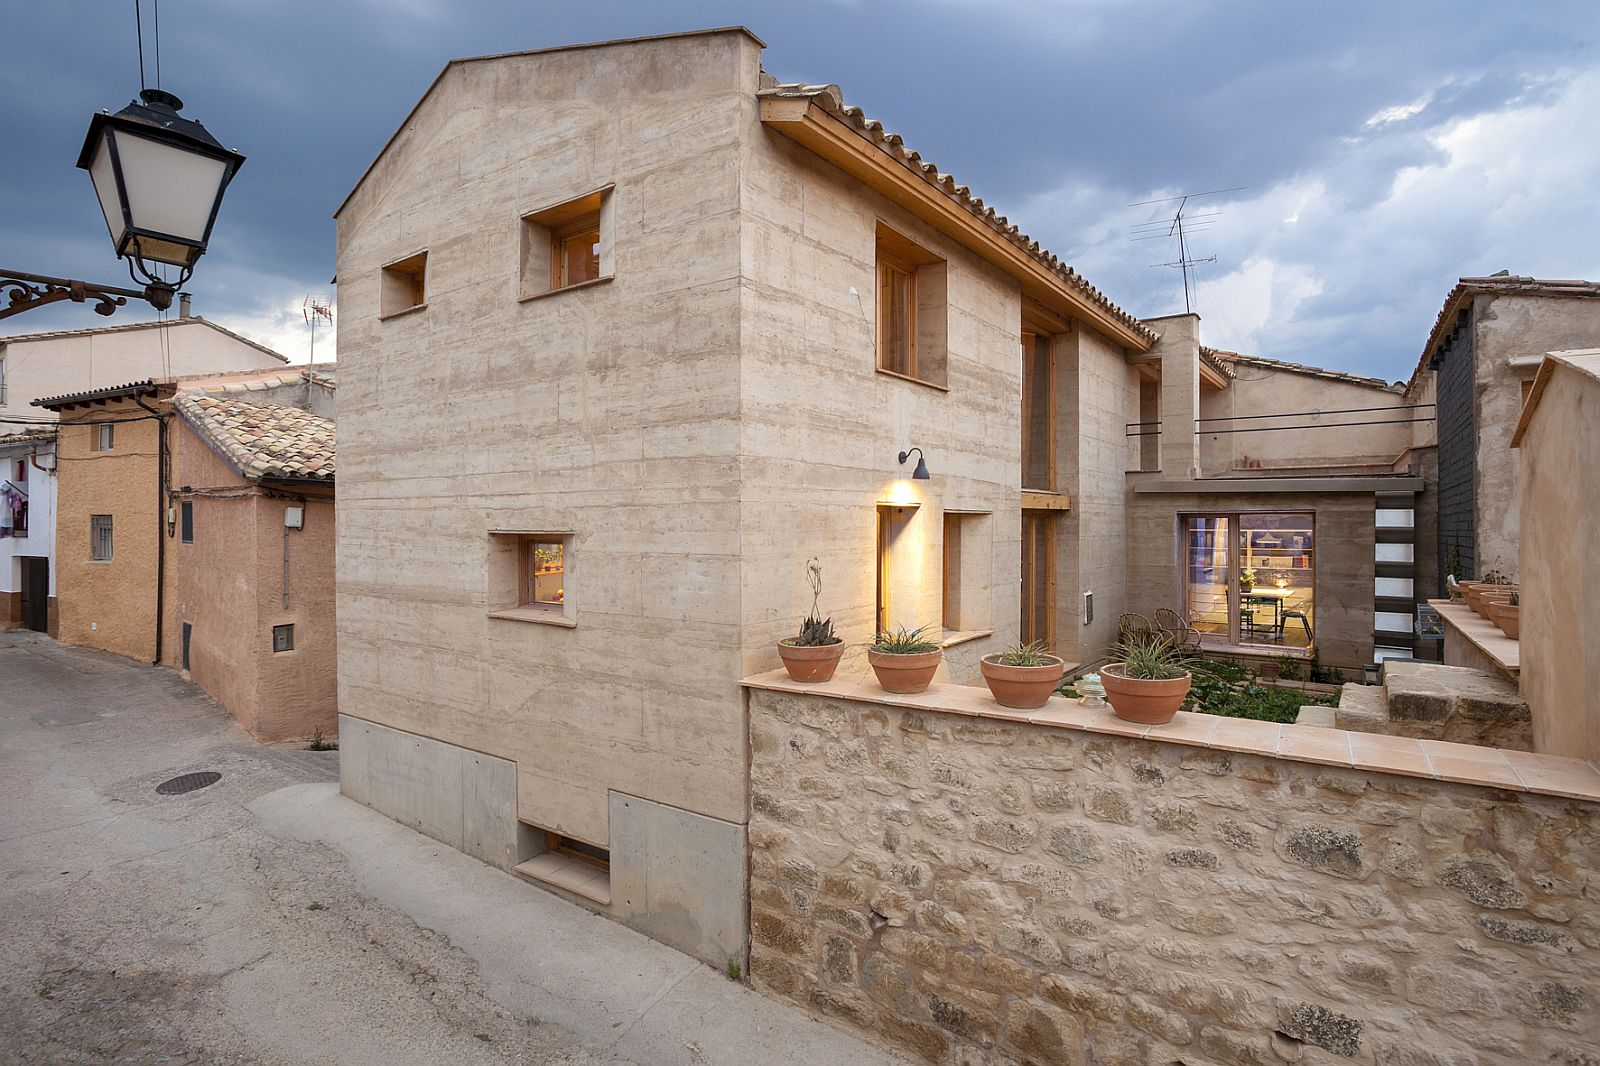 Architectural revival sustainable rammed earth house in spain - Earth home designs ...